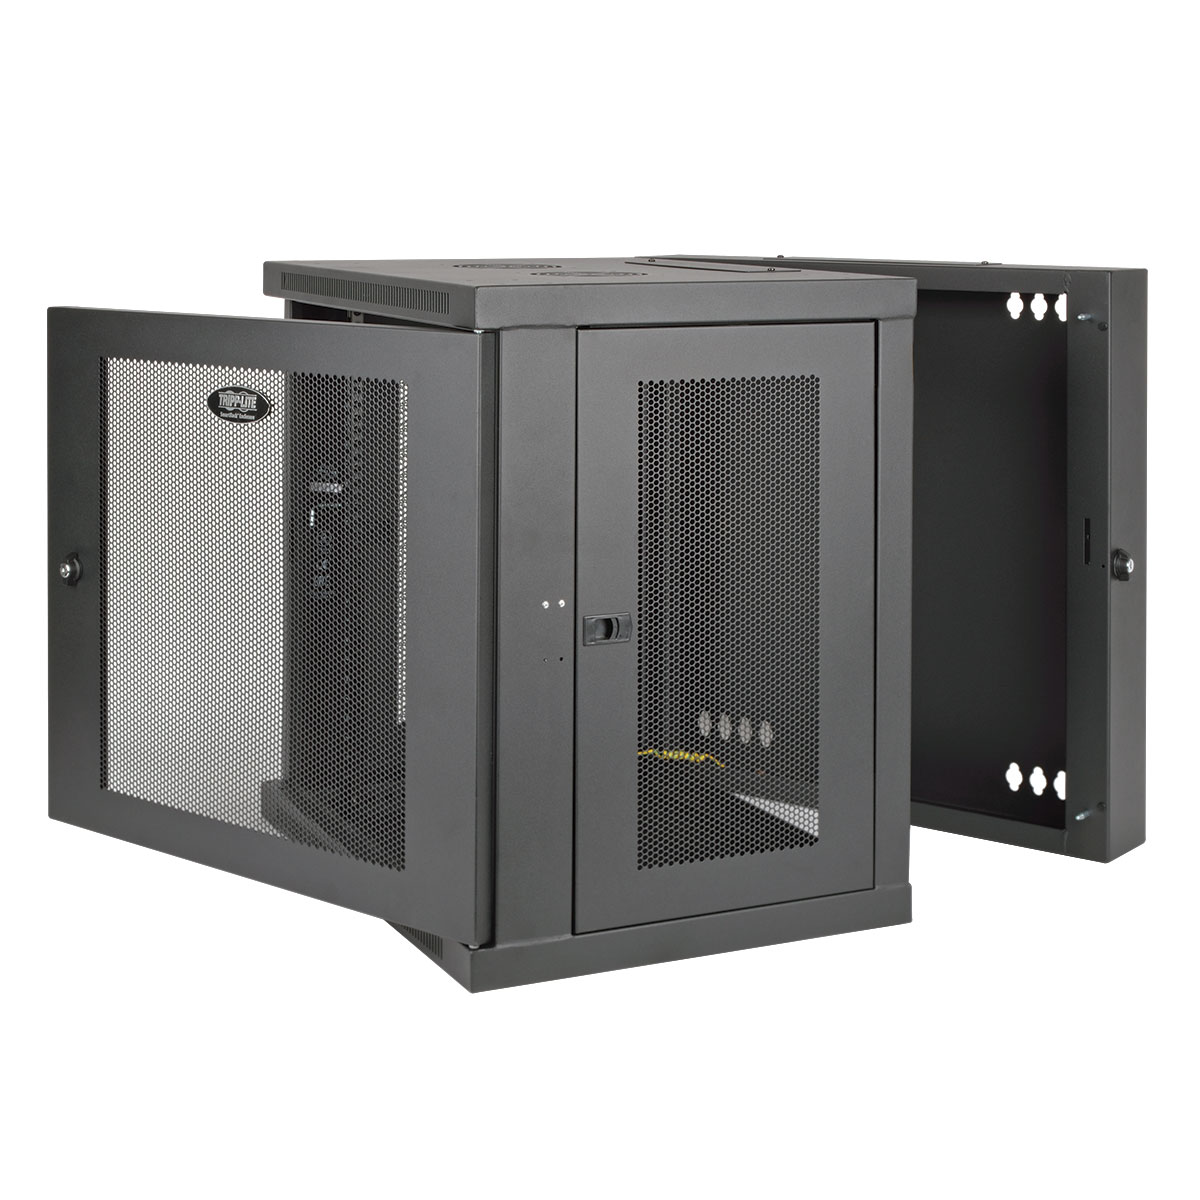 Unique Wall Mount Rack Enclosure Cabinet